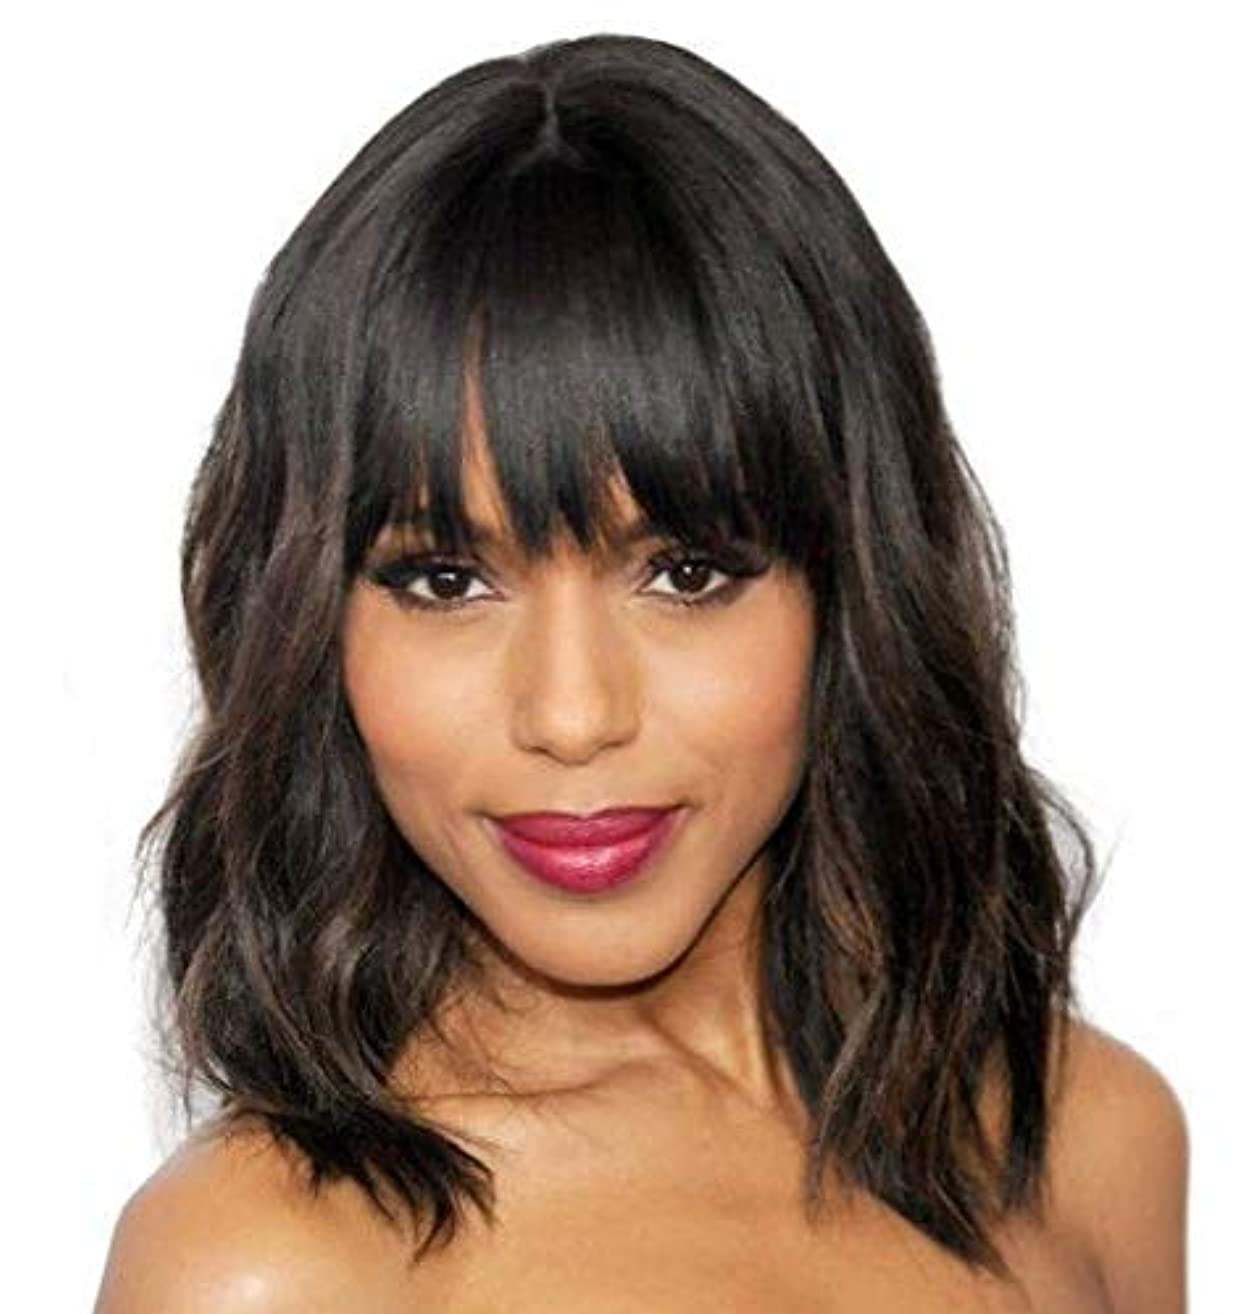 Yviann Short Wavy Bob Wigs with Bangs Shoulder Length Synthetic Curly Bob Wigs Short Black Wigs for Black Women Heat Resistant 1B Color